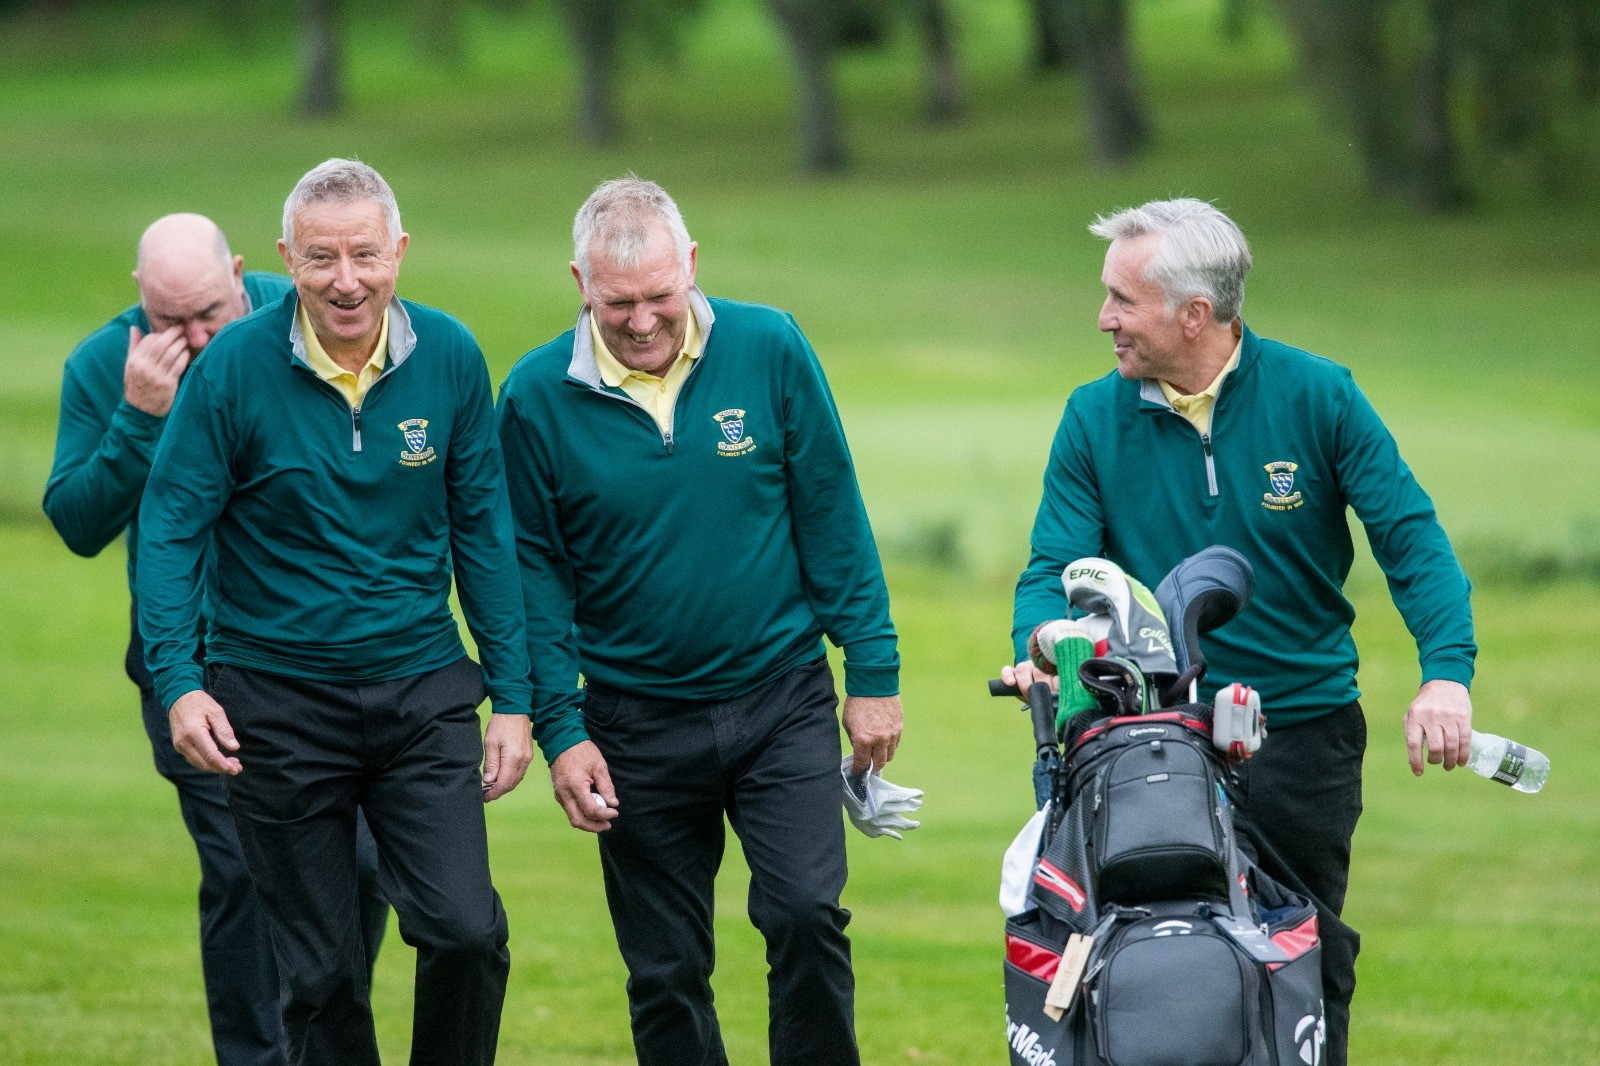 Senior Men's County Finals – Day One: Sussex lead the way